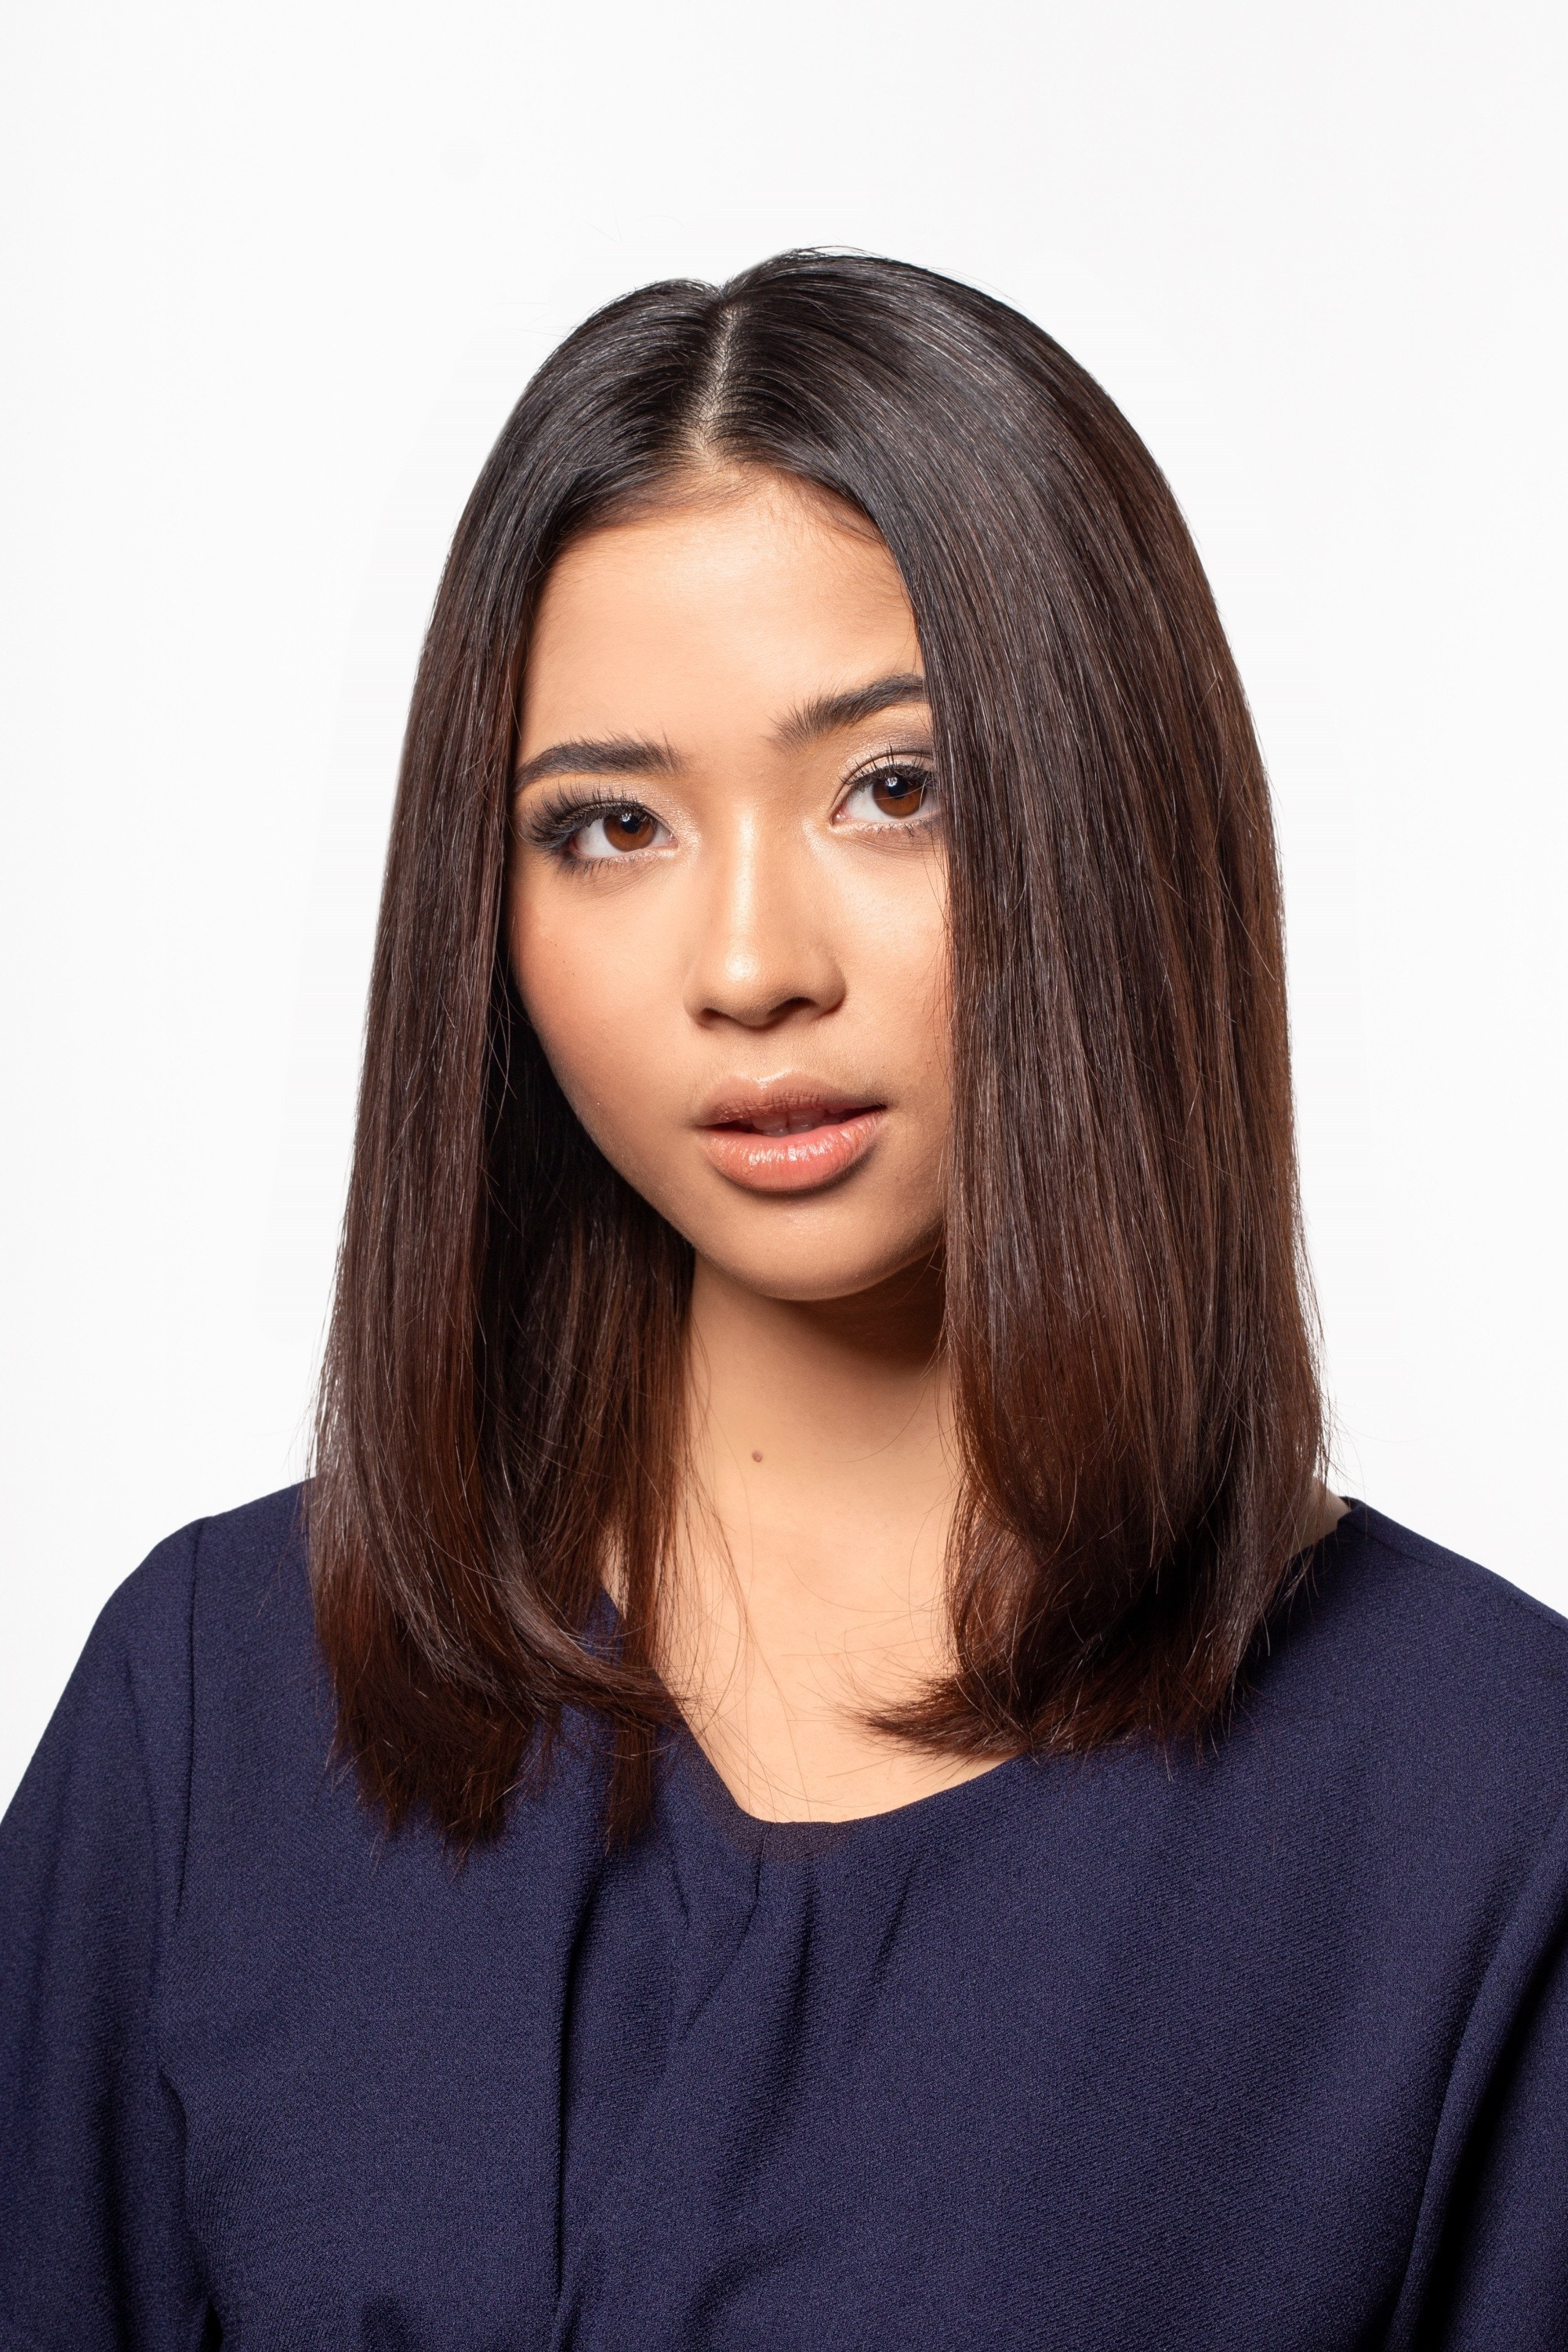 Shoulder Length Hairstyles: 11 Looks for Filipinas  All Things